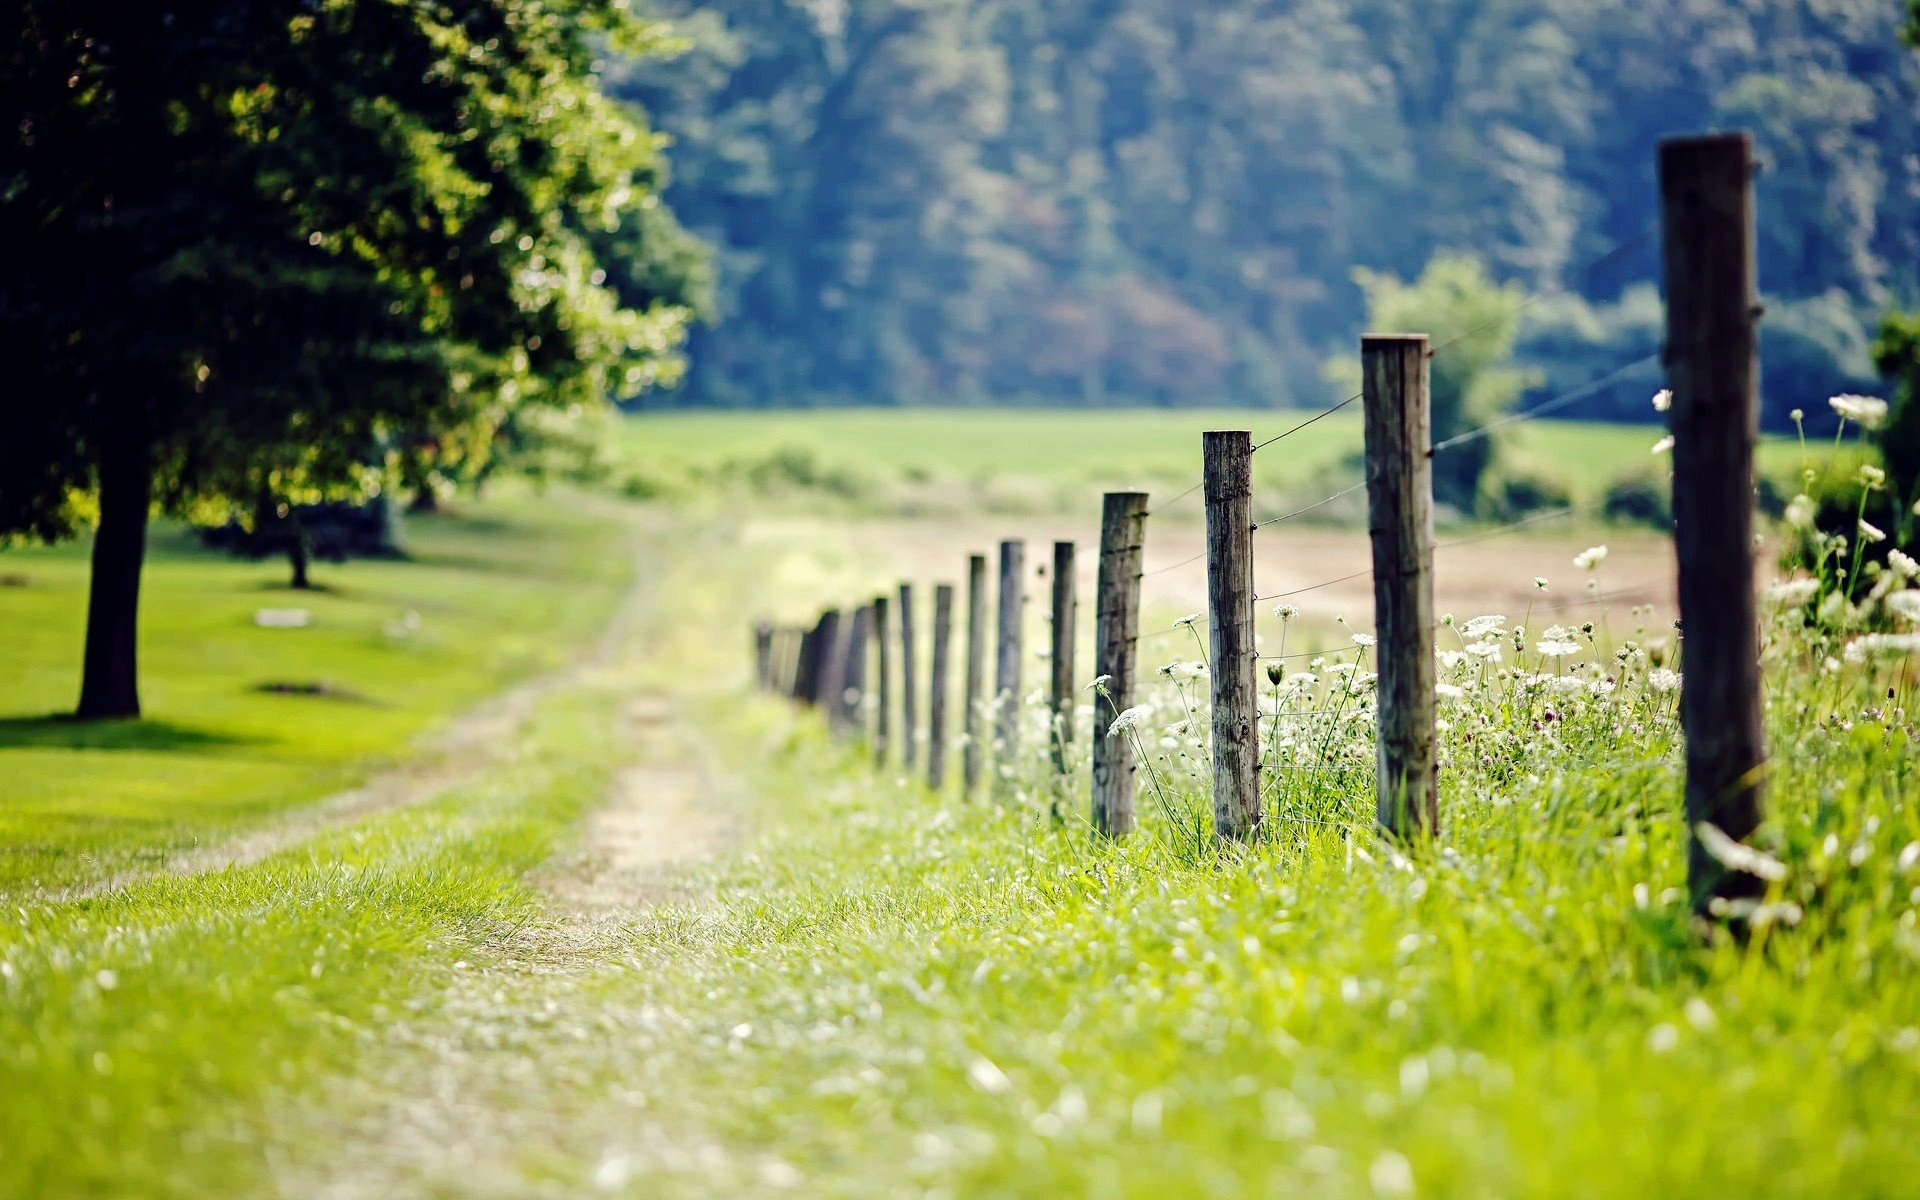 nature fence fencing meadow grass green tree foliage leaves flower flowers trees day path blur background wallpaper widescreen full screen hd wallpapers